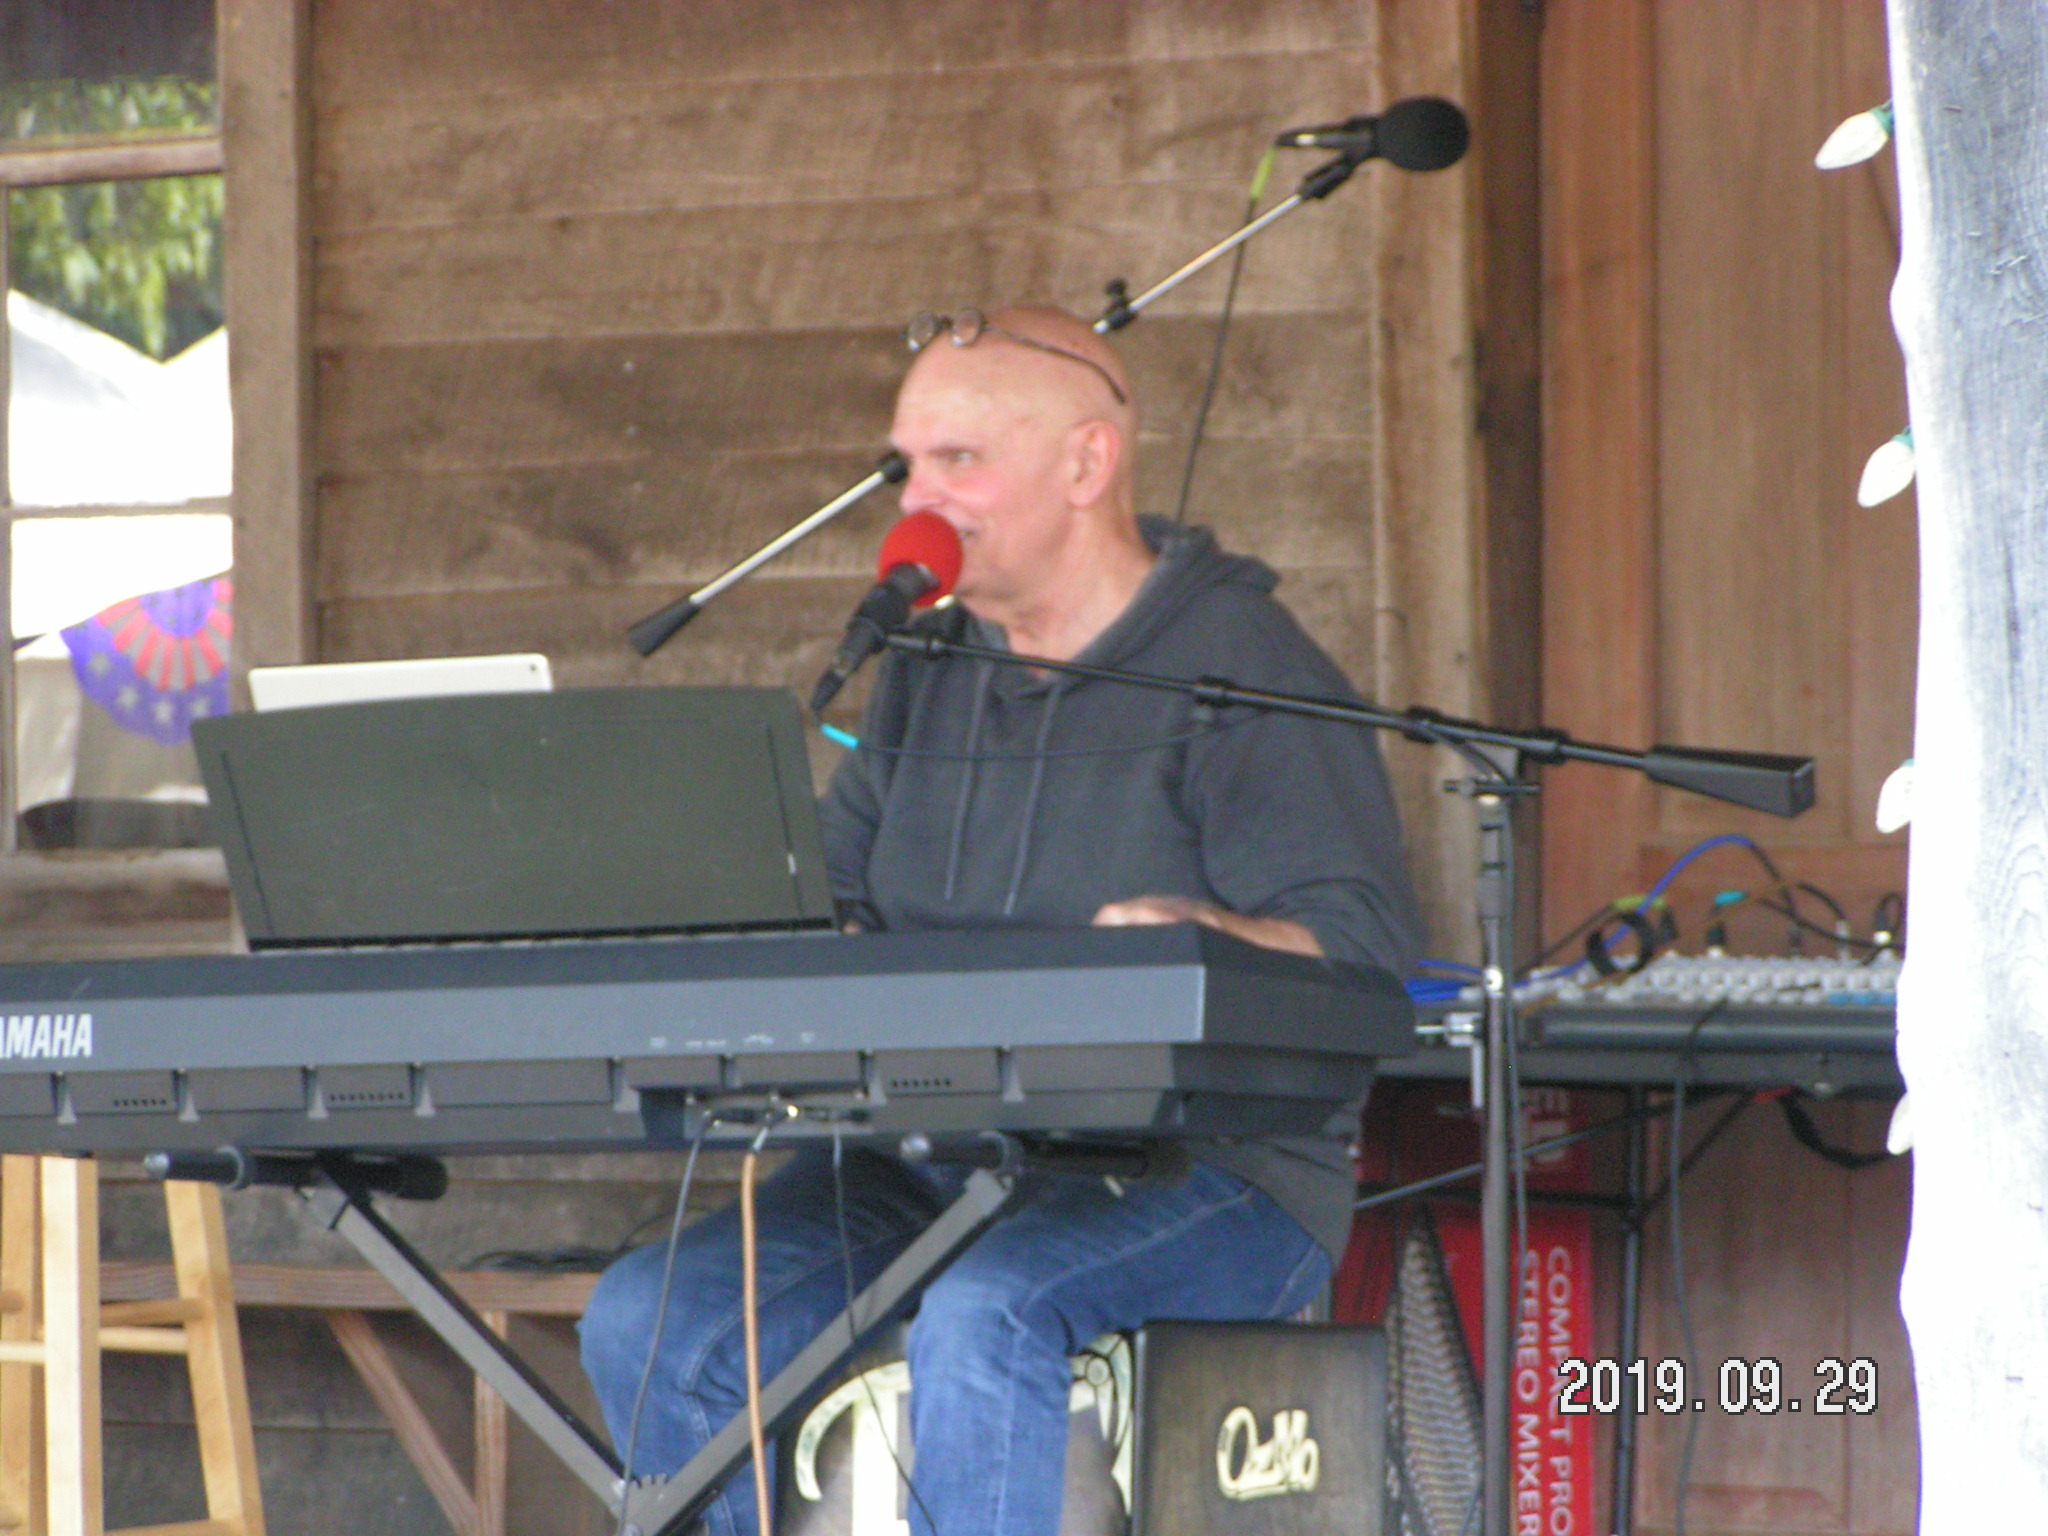 Ruell Chappell performing at the Mill